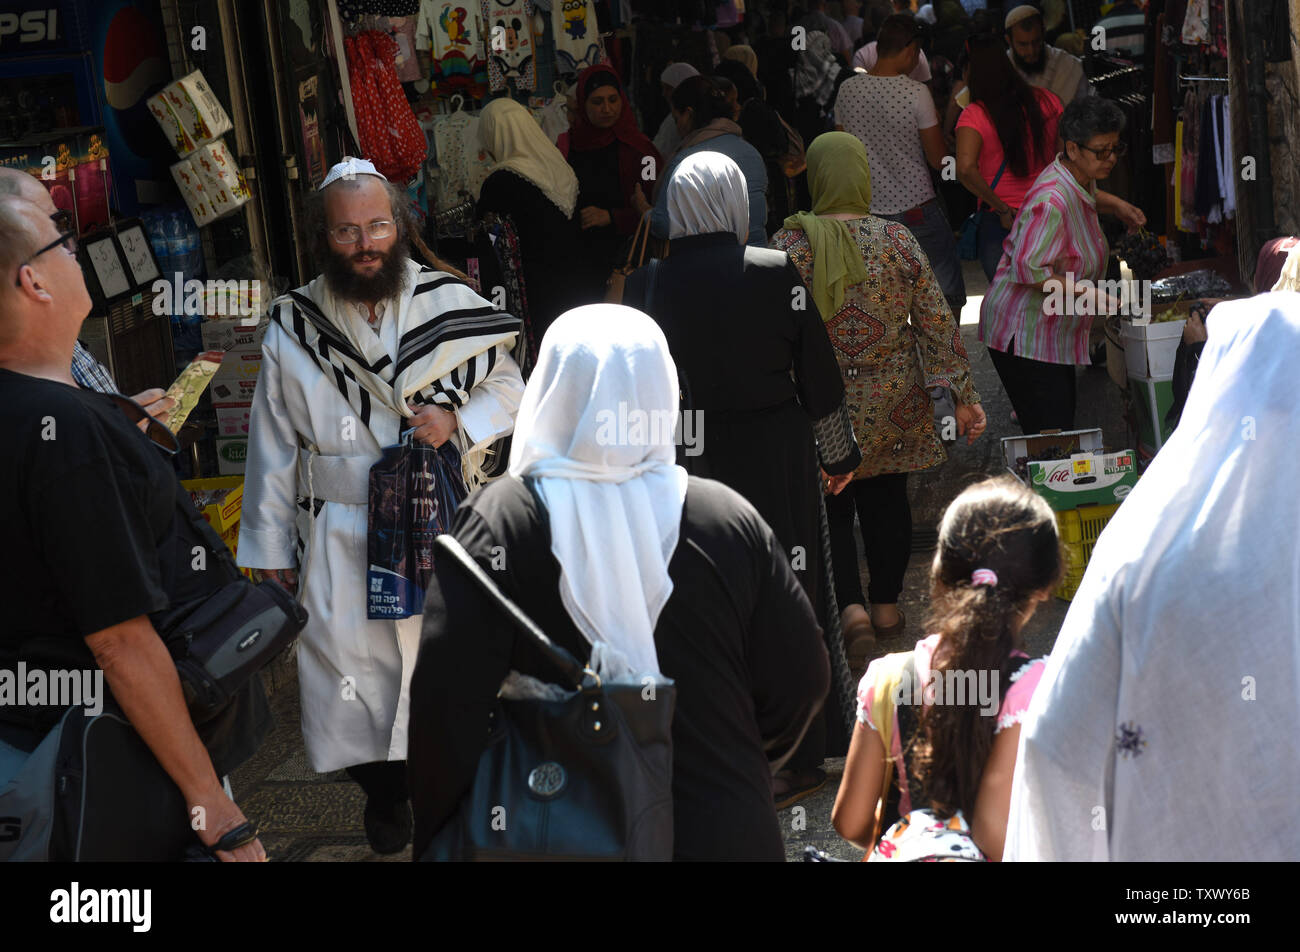 An Ultra-Orthodox Jew wears and white robe and prayer shawl while walking between Muslim women in the Old City of Jerusalem, on Rosh HaShanah, the Jewish New Year, and the Islamic New Year, September 21, 2017. Both religions follow the lunar calendar. Photo by Debbie Hill/UPI Stock Photo